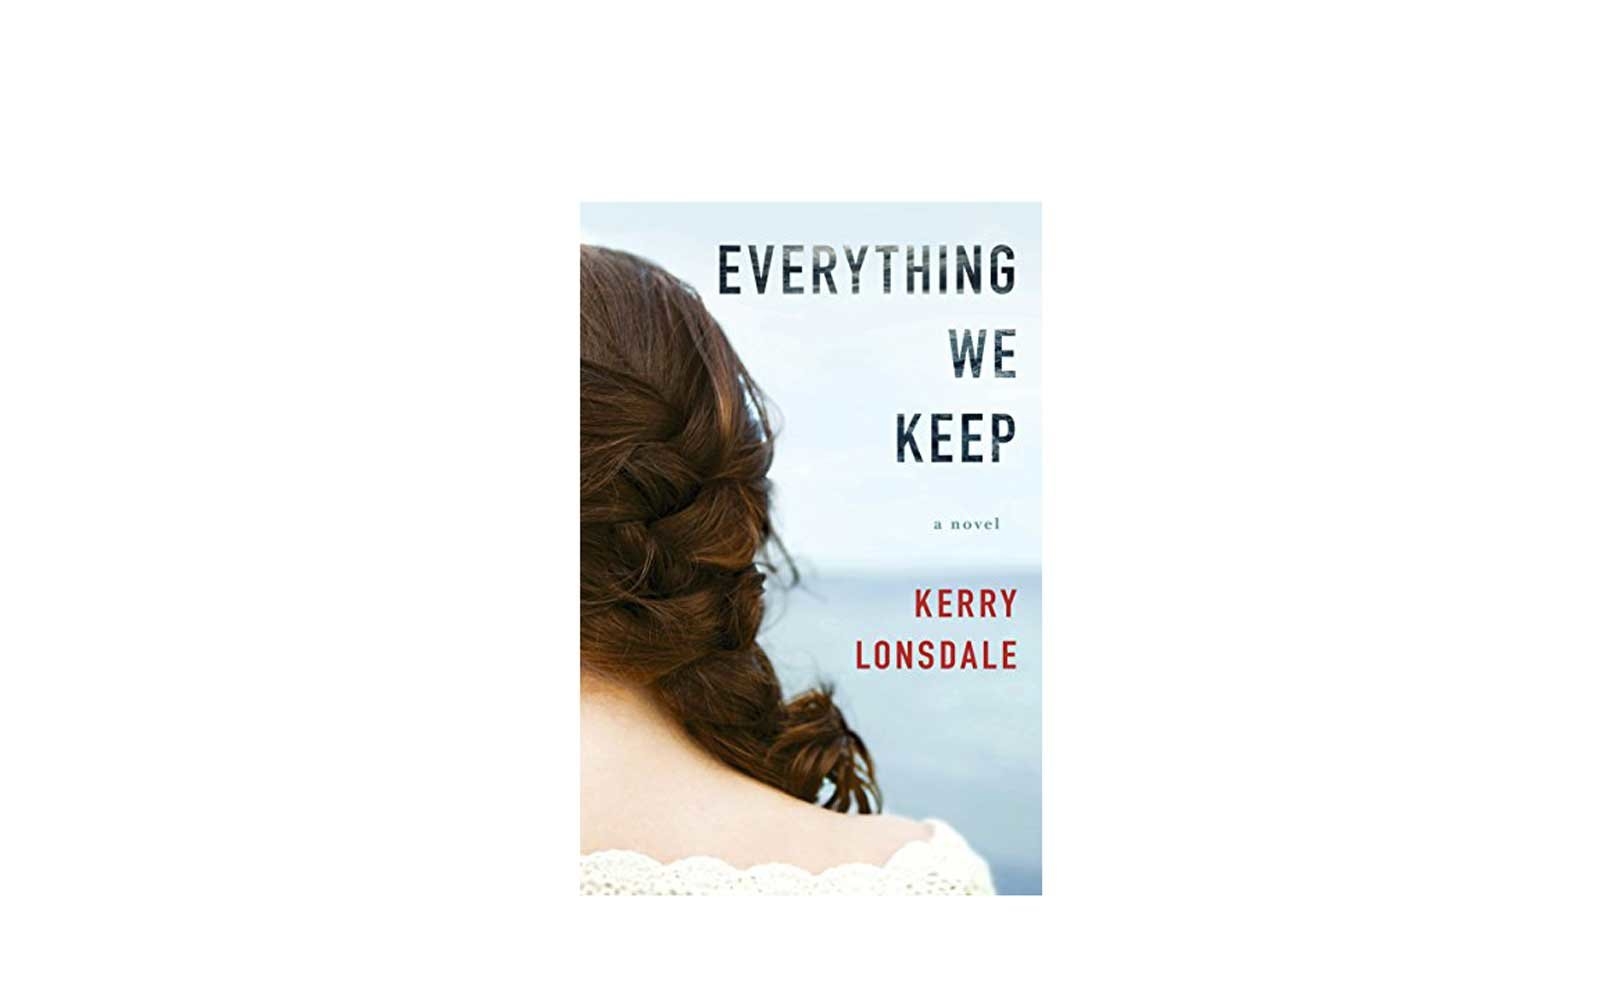 20 most popular Kindle books 2017 Everything We Keep